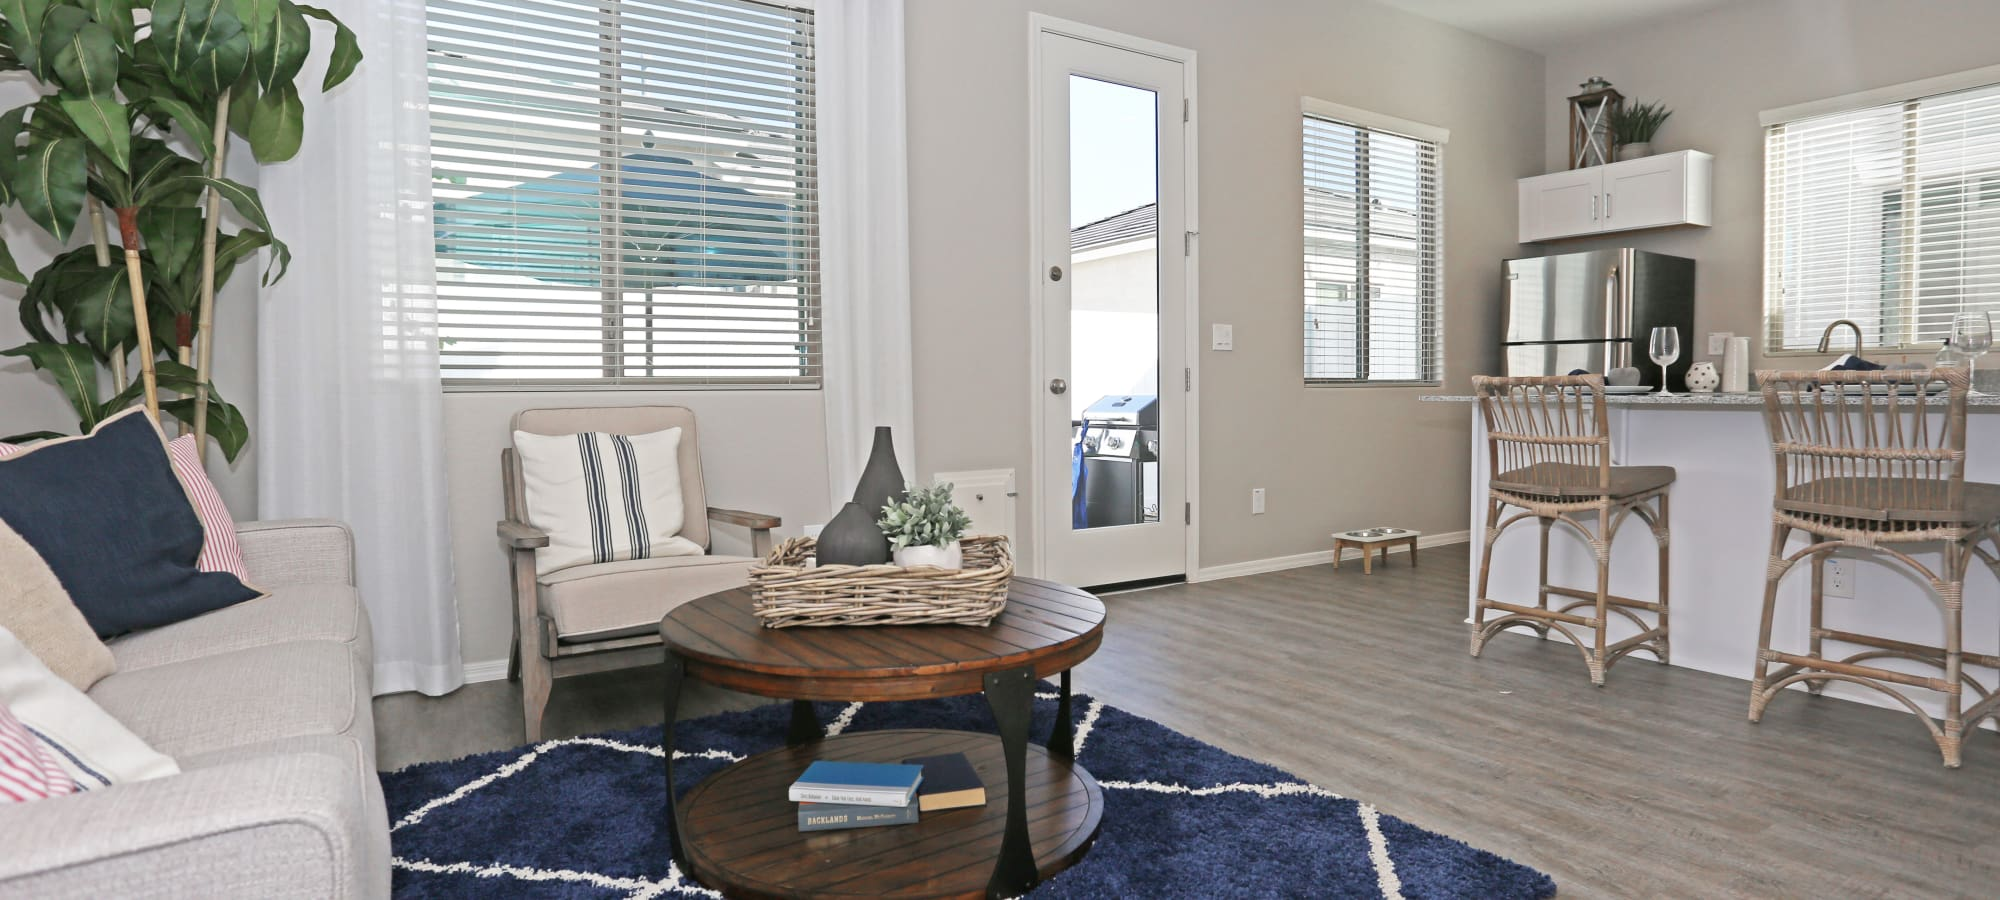 Comfortable living room in model home at Christopher Todd Communities At Marley Park in Surprise, Arizona